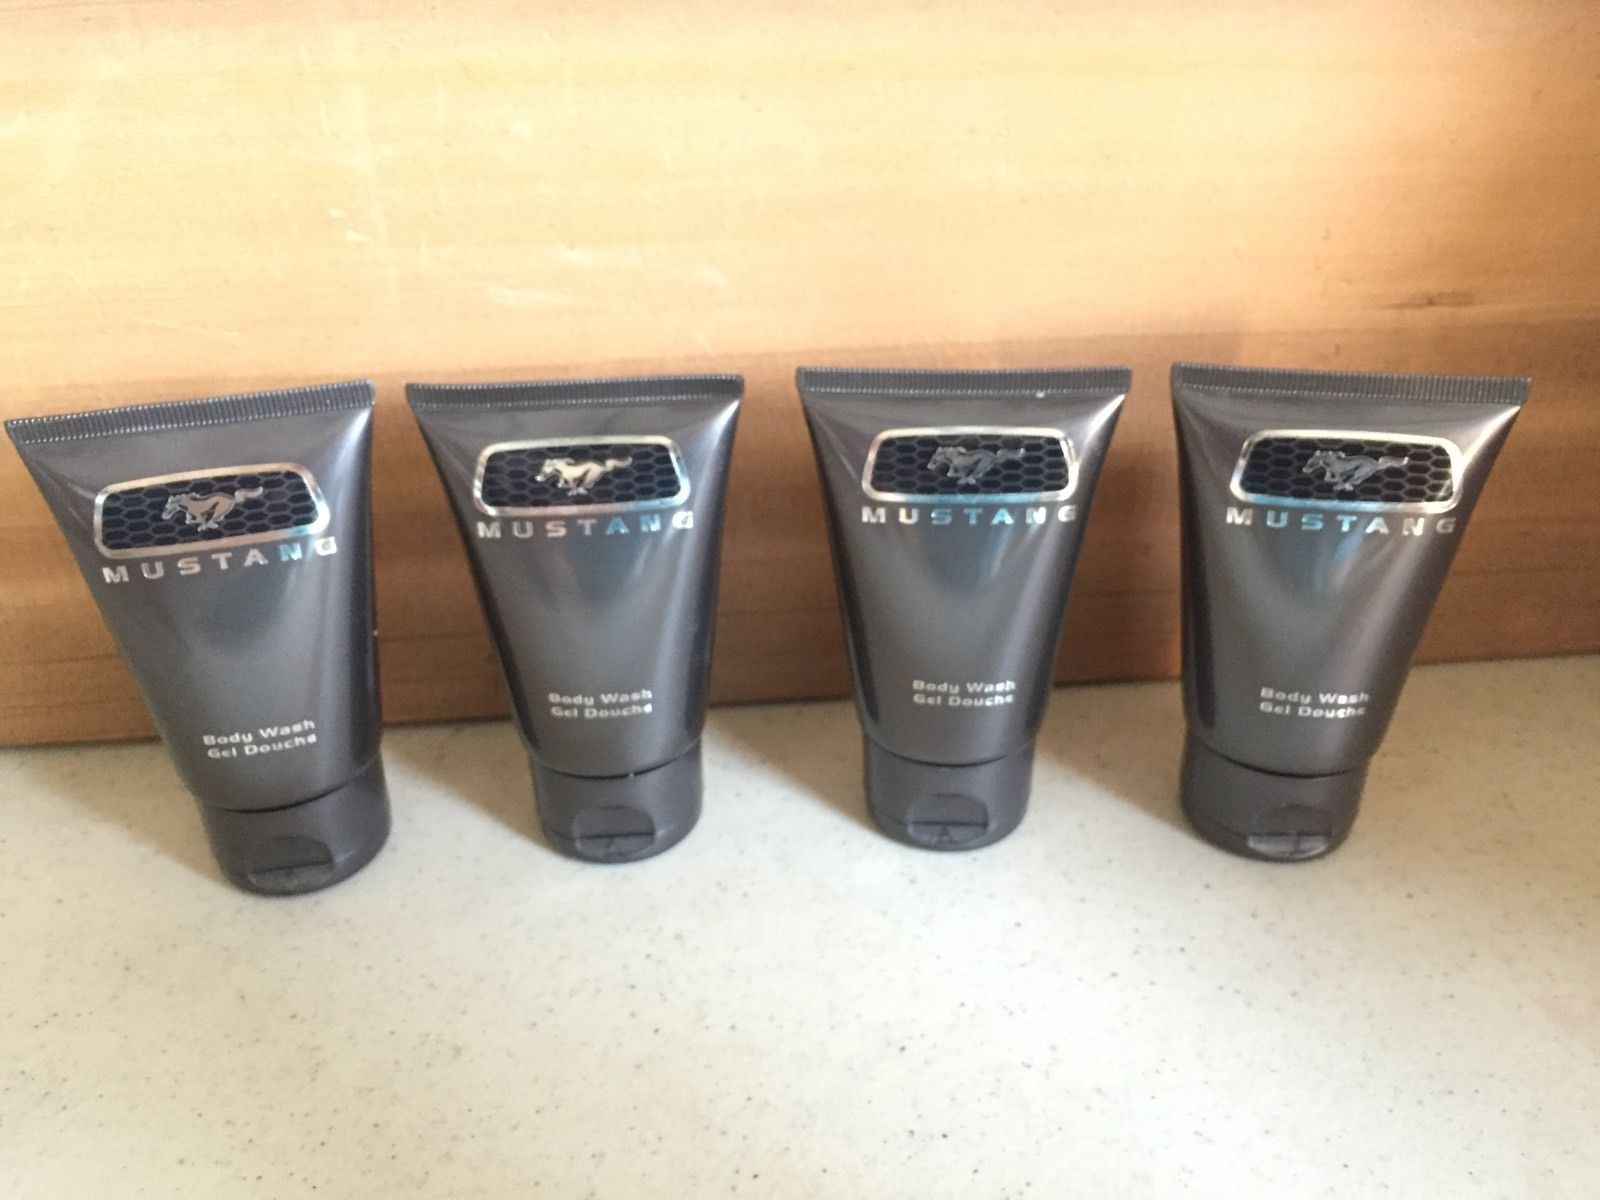 MUSTANG by Estee Lauder for MEN: BODY WASH 1.7 OZ EACH~LOT OF 4